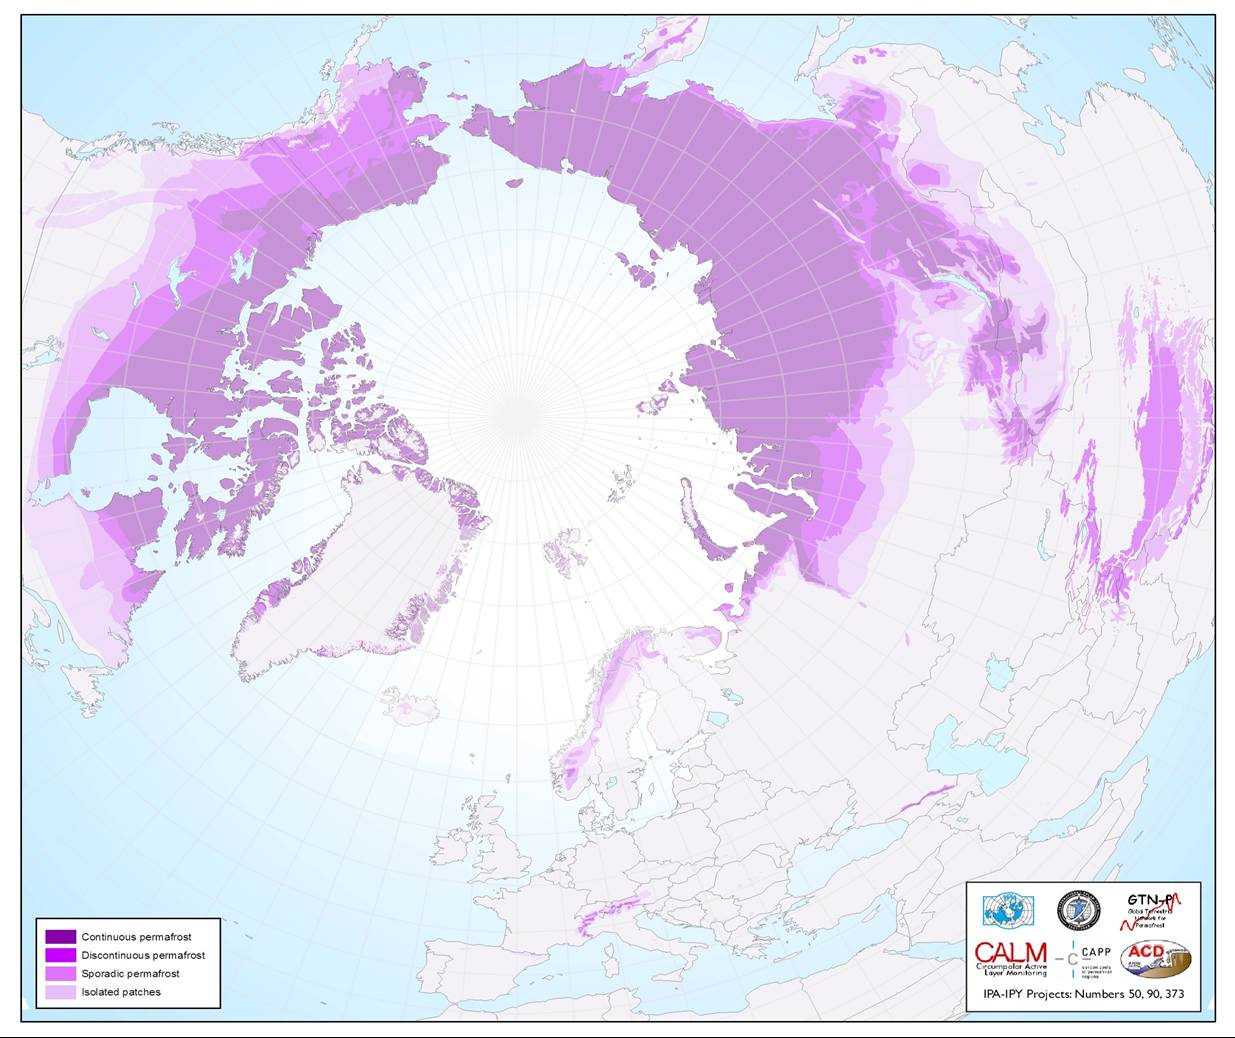 Map showing which parts of the world have permafrost